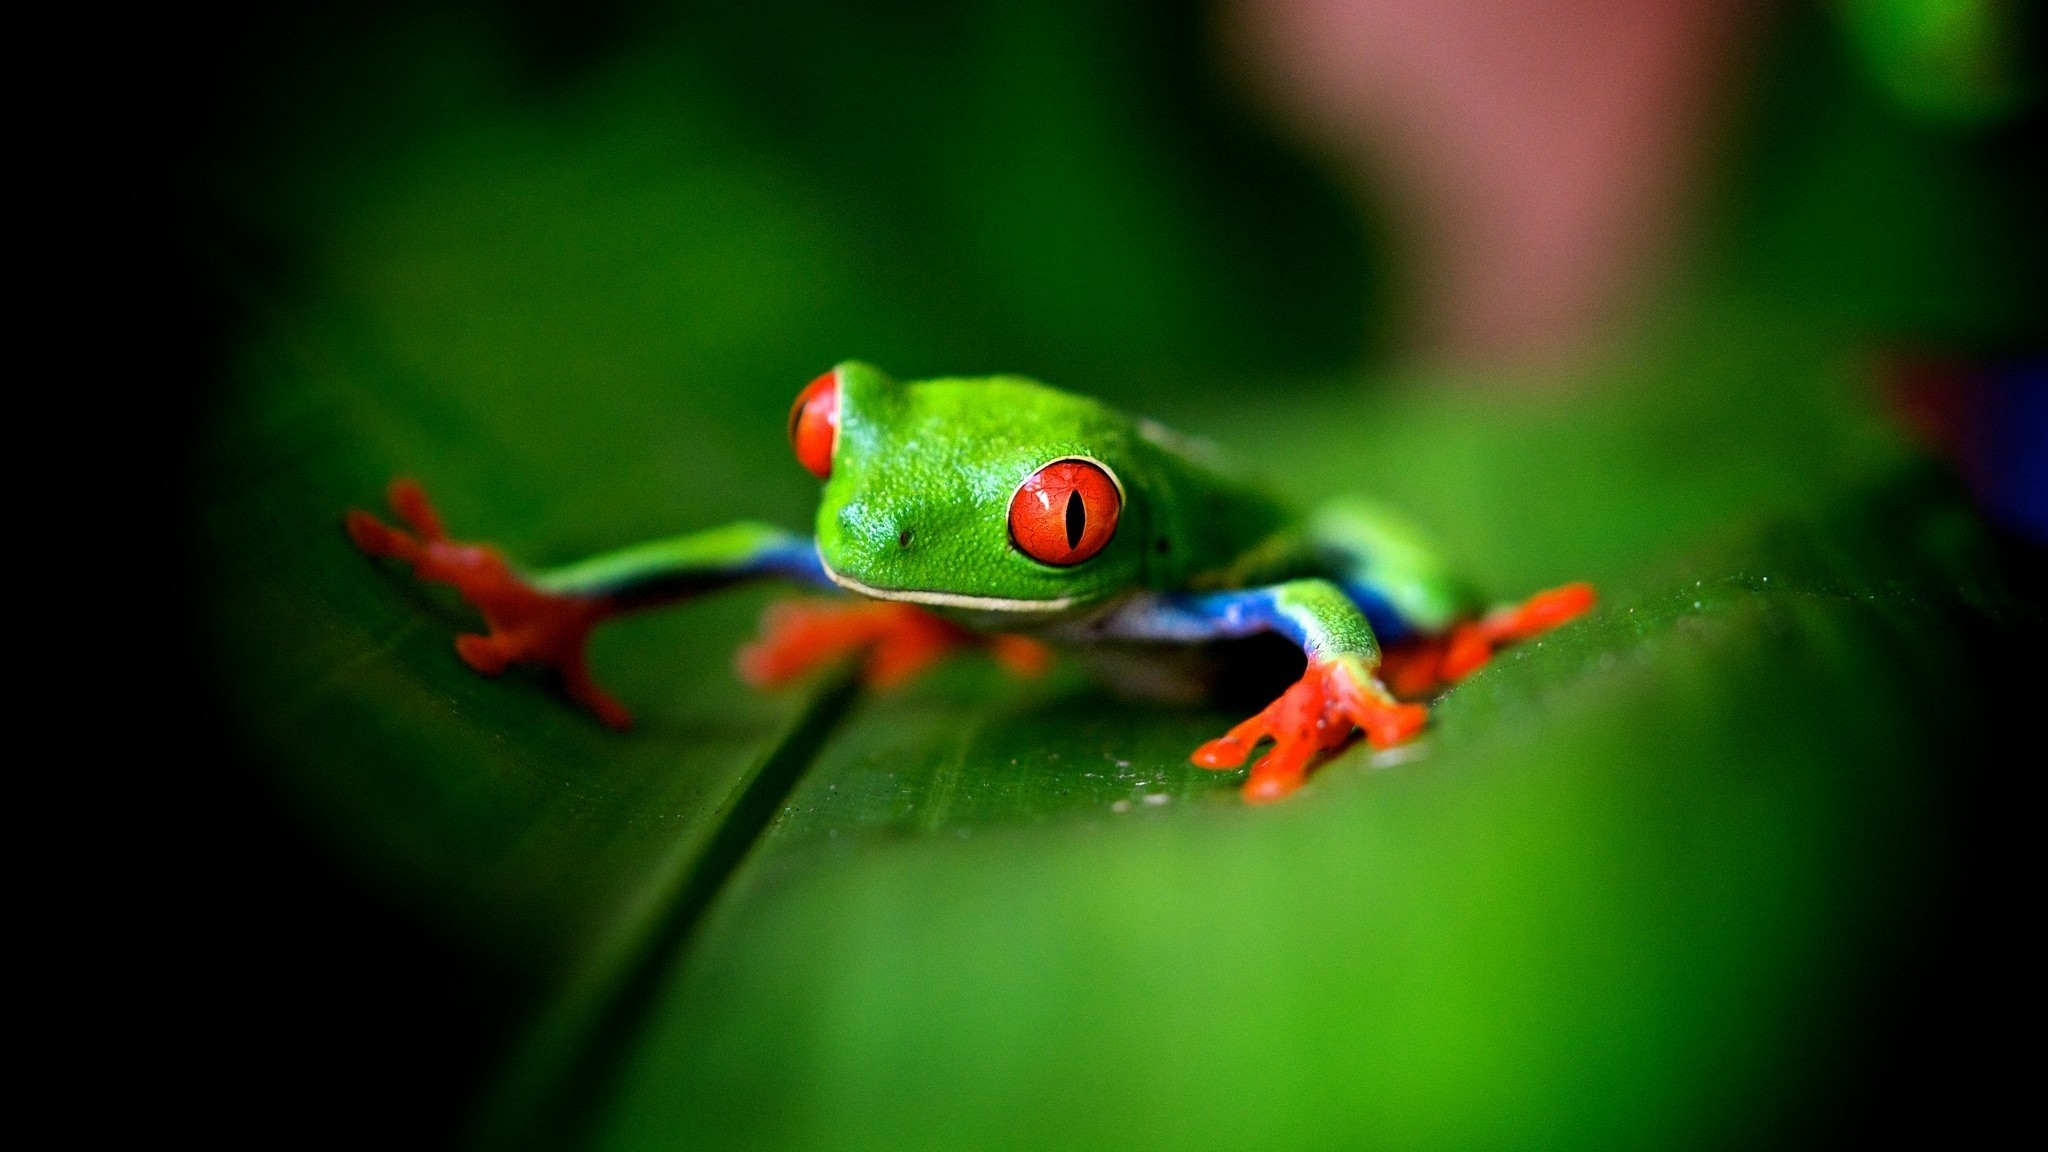 Res: 2048x1152, Cute Frog Wallpaper High Quality Resolution